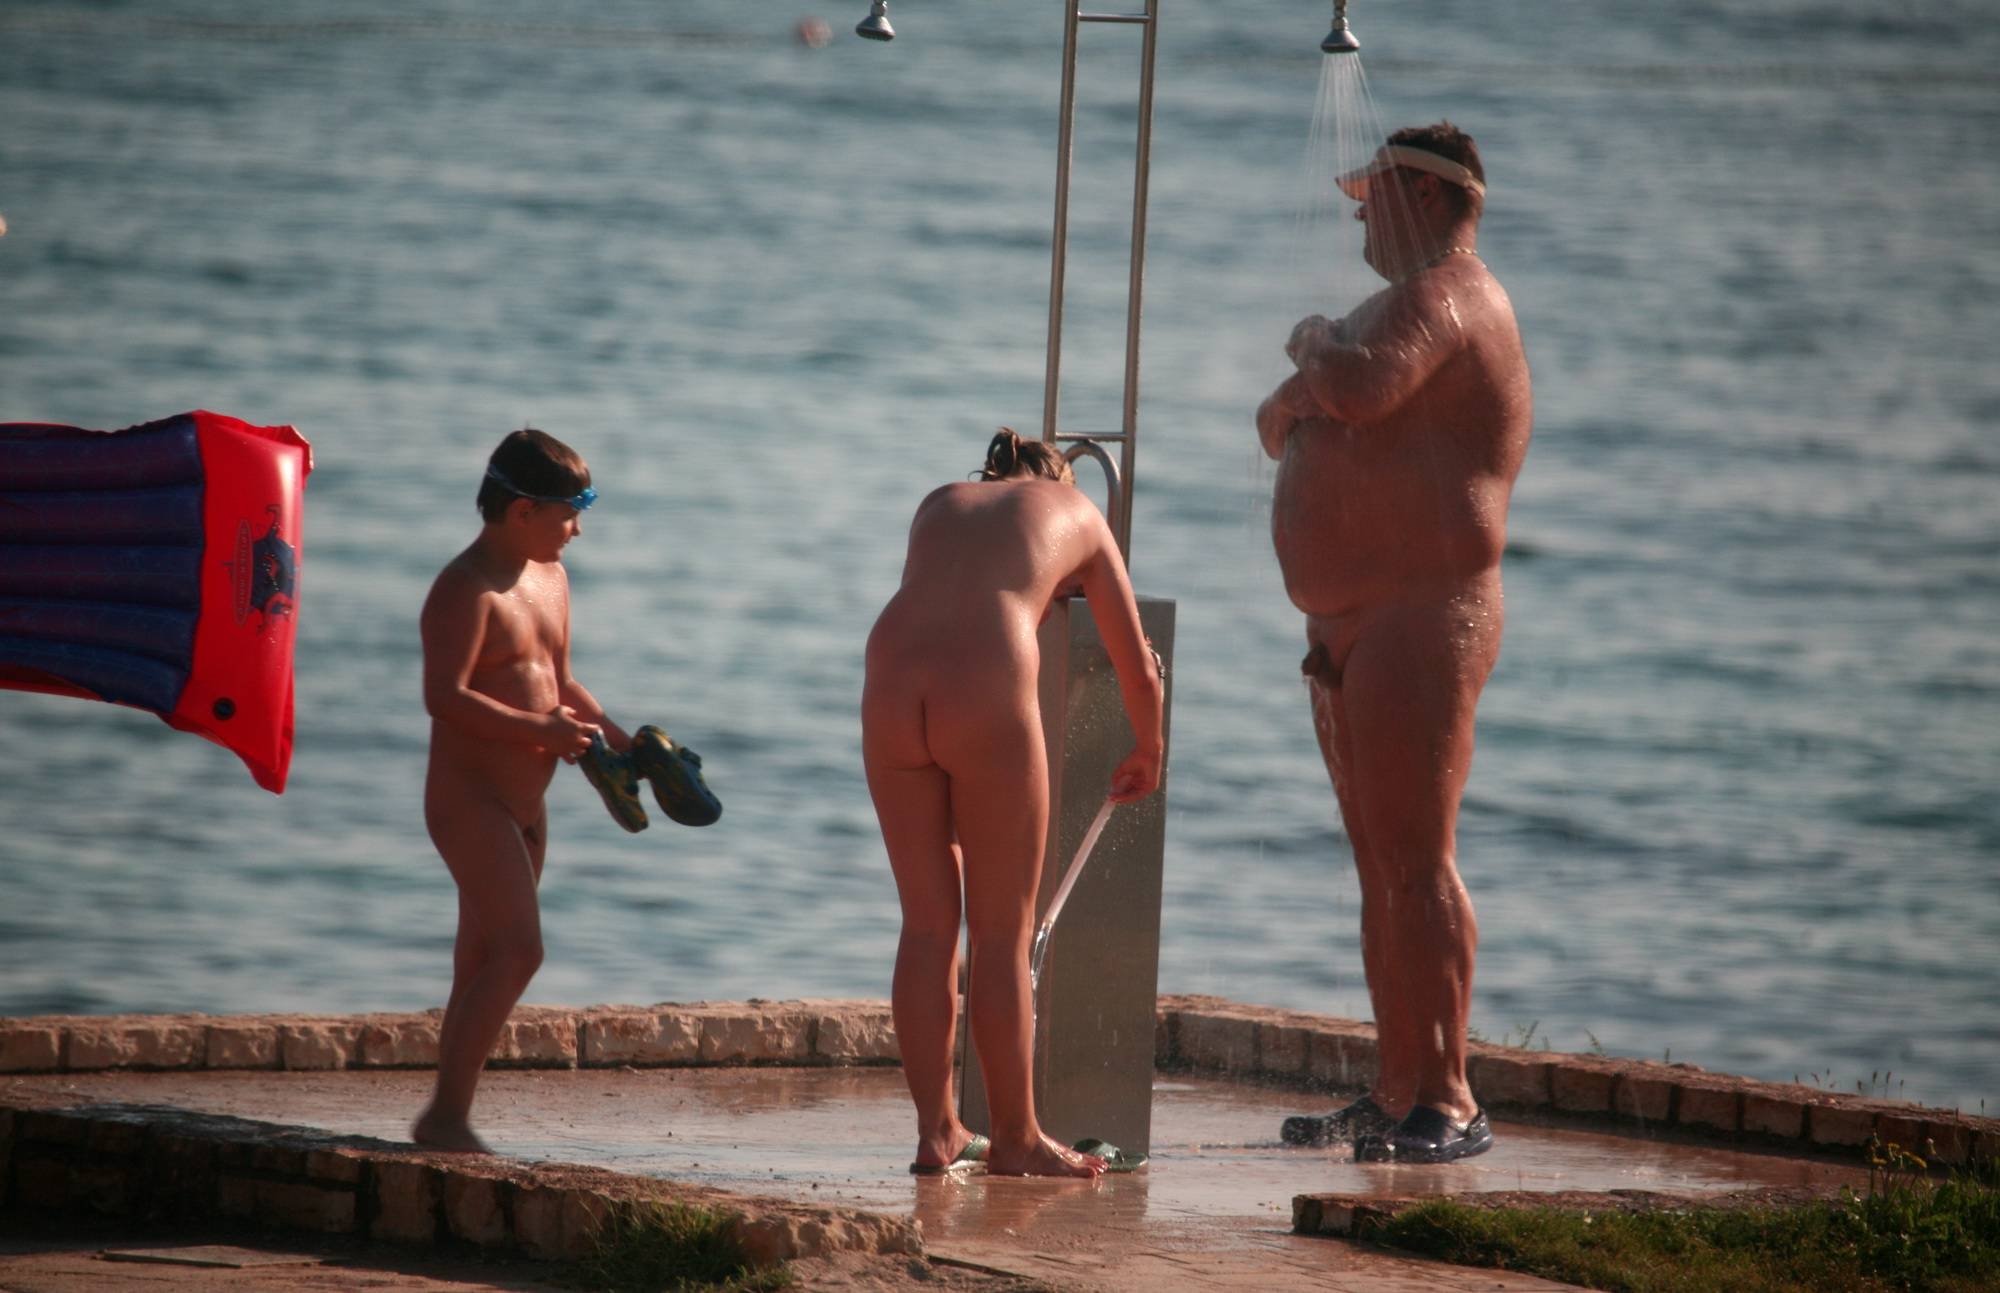 Nudist Pics Naturist Shower at Dusk - 1